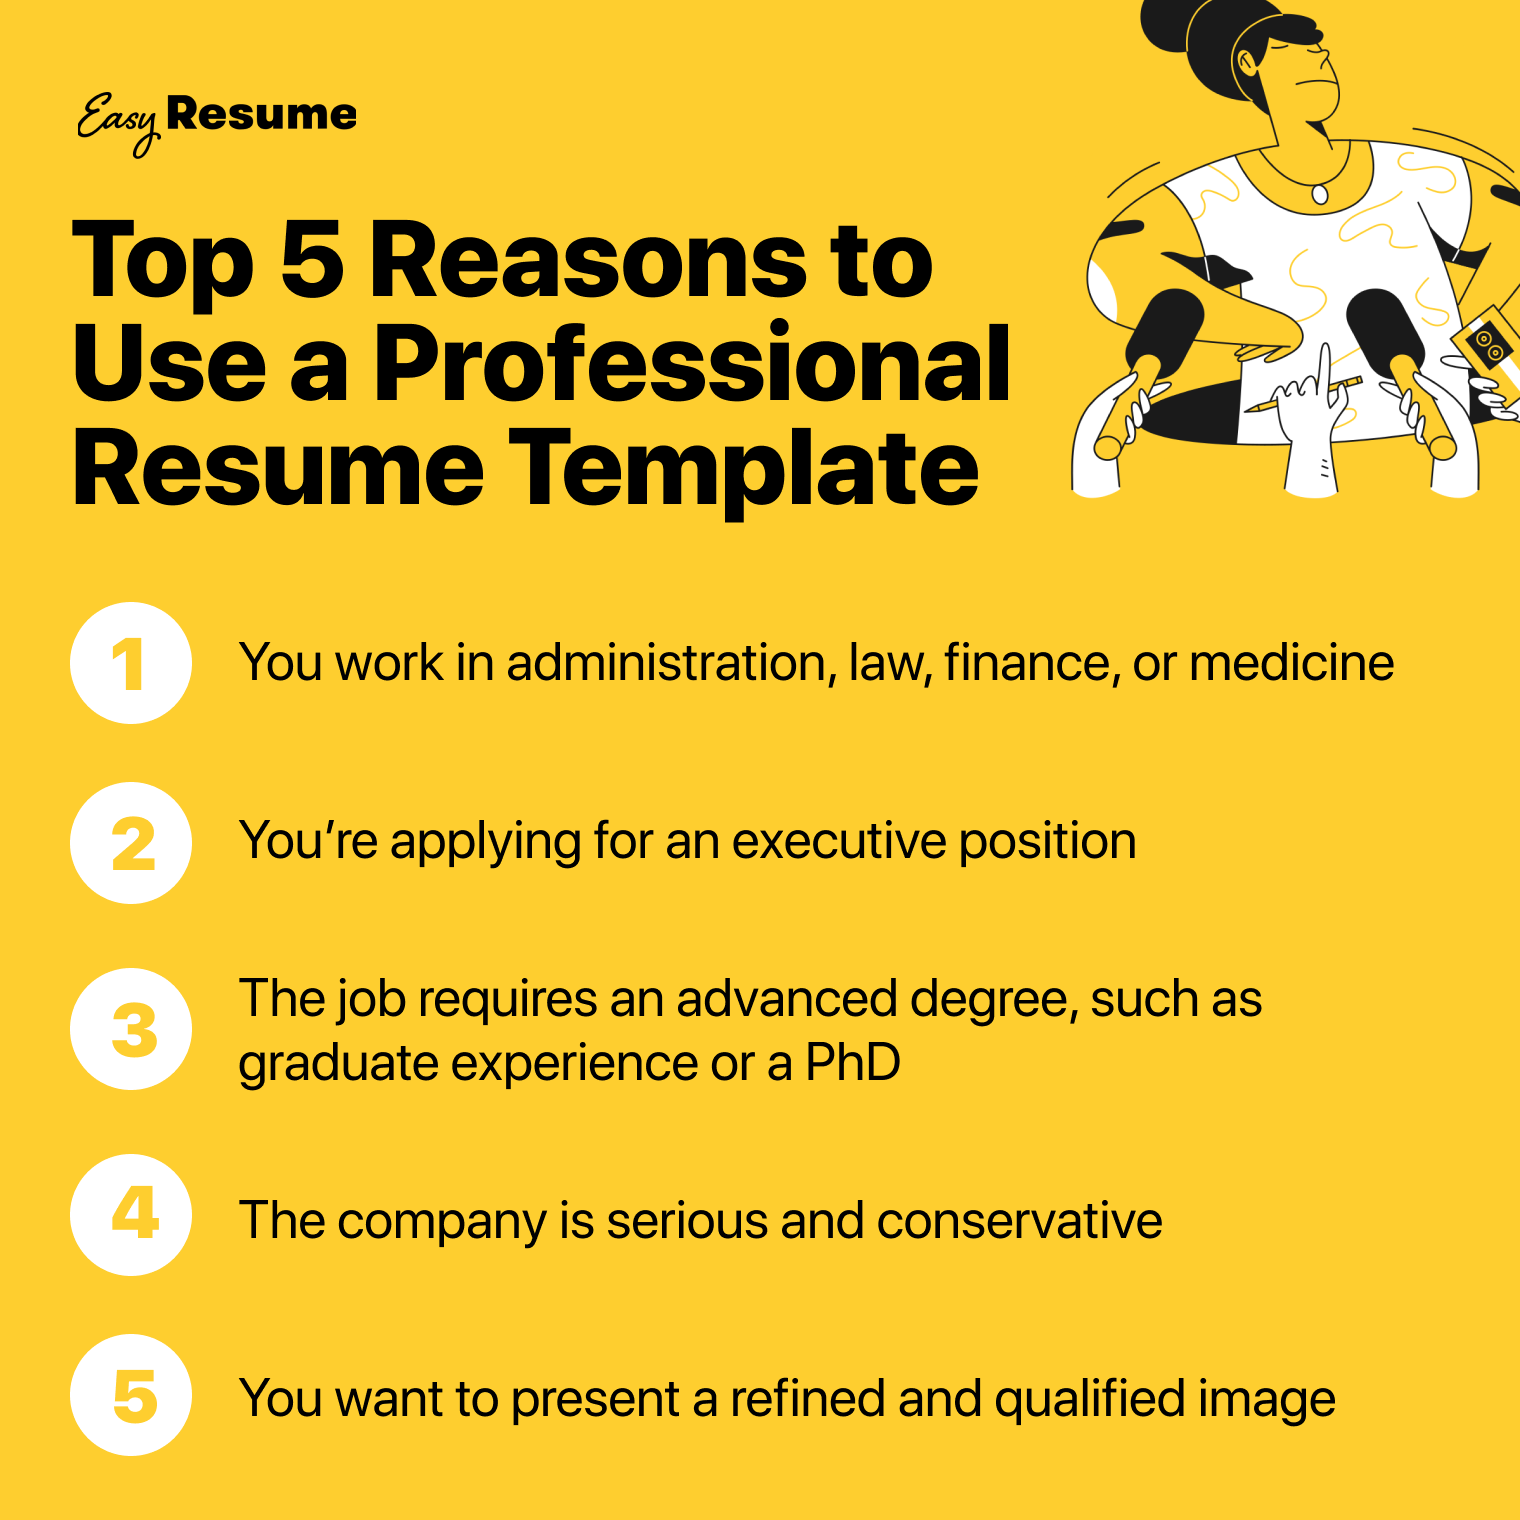 Top 5 Reasons to Use a Professional Resume Template